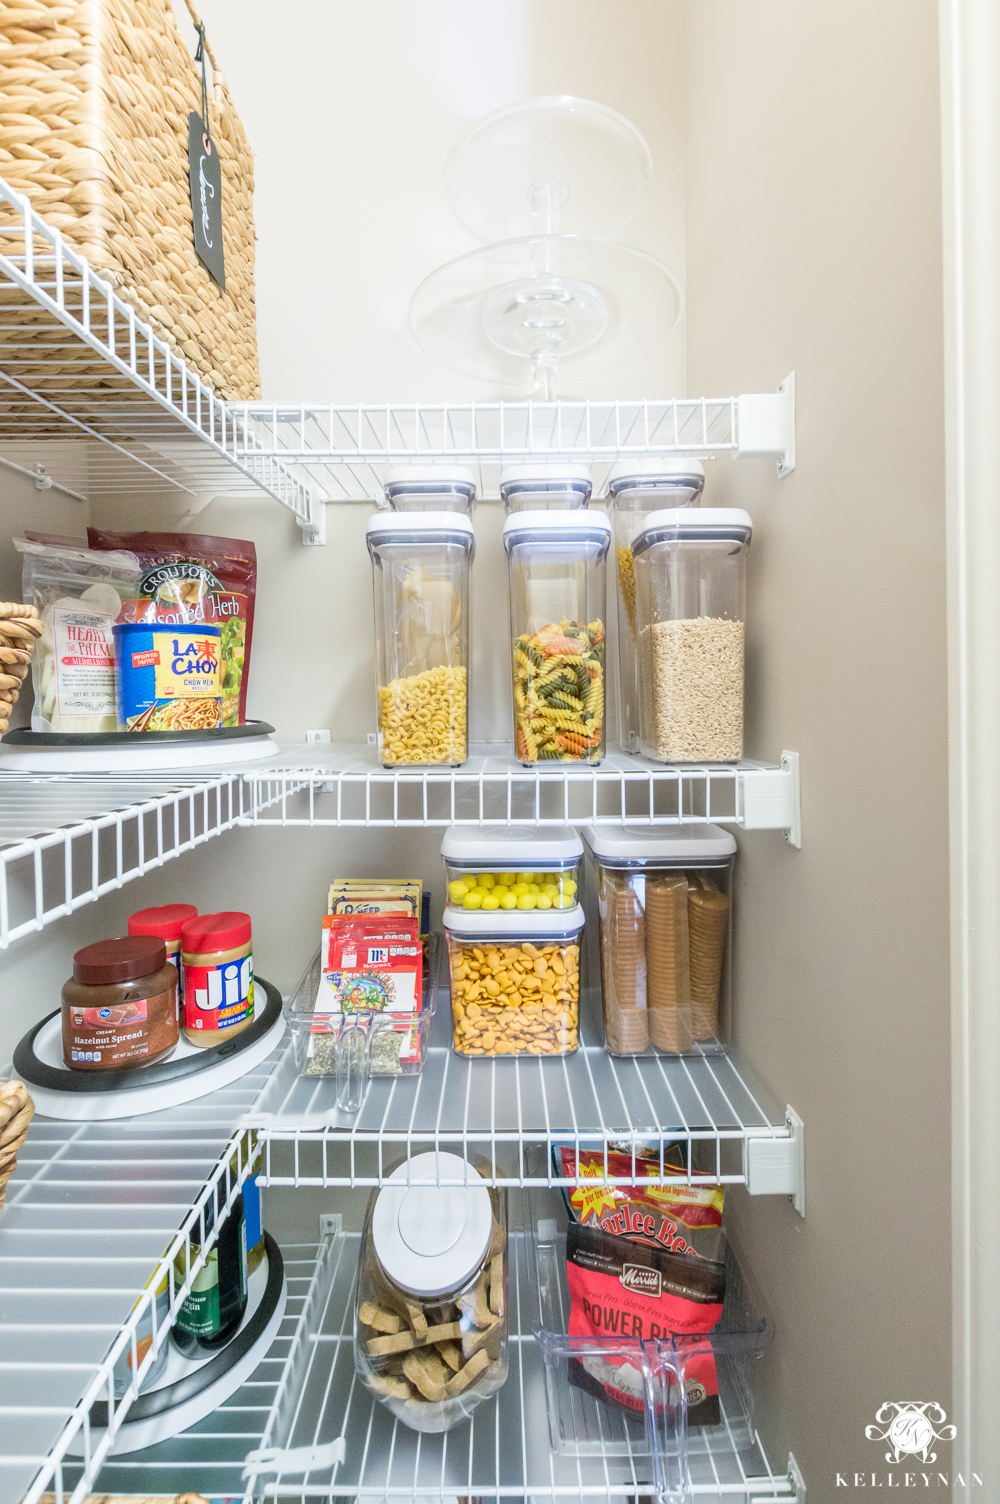 Attirant Low Cost, Budget Pantry Organization Ideas